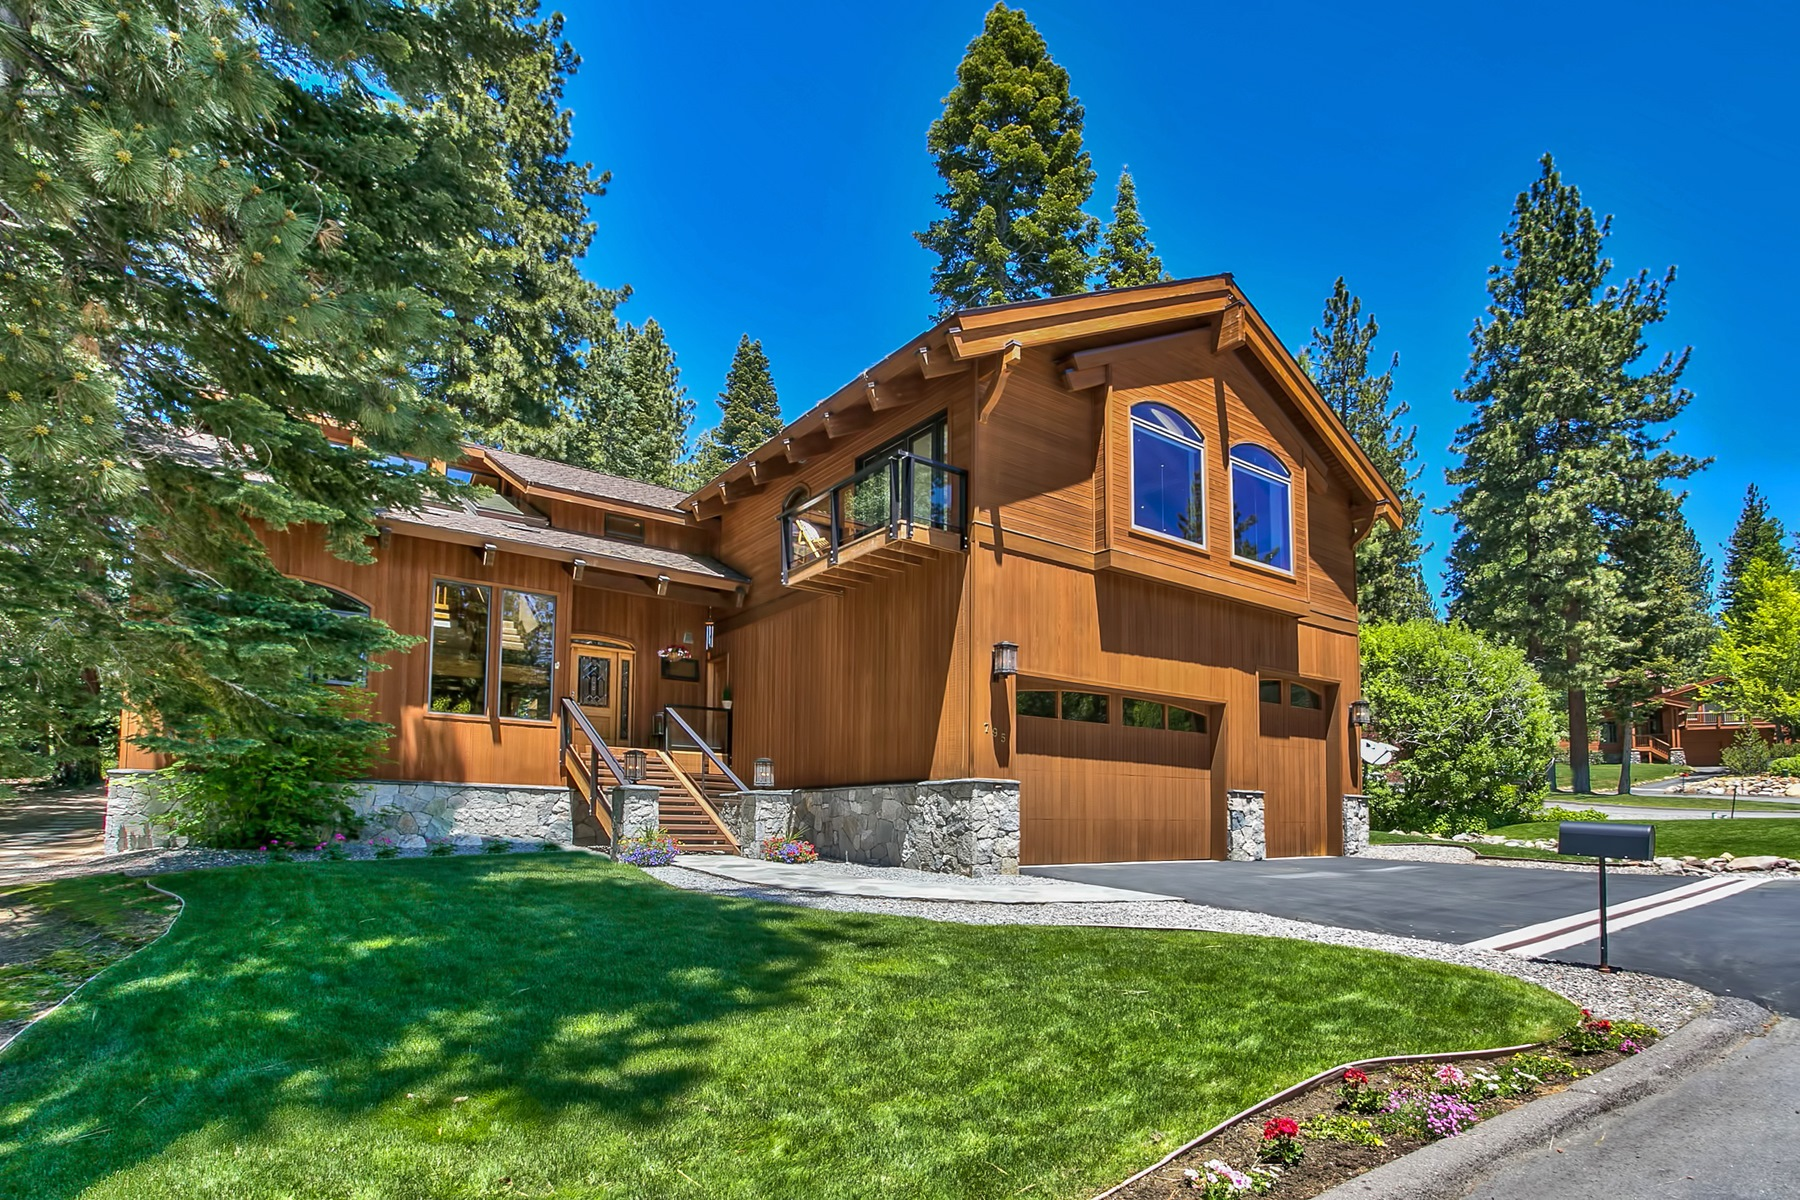 Single Family Home for Sale at 795 Golfers Pass Road Incline Village, Nevada, 89451 Lake Tahoe, United States